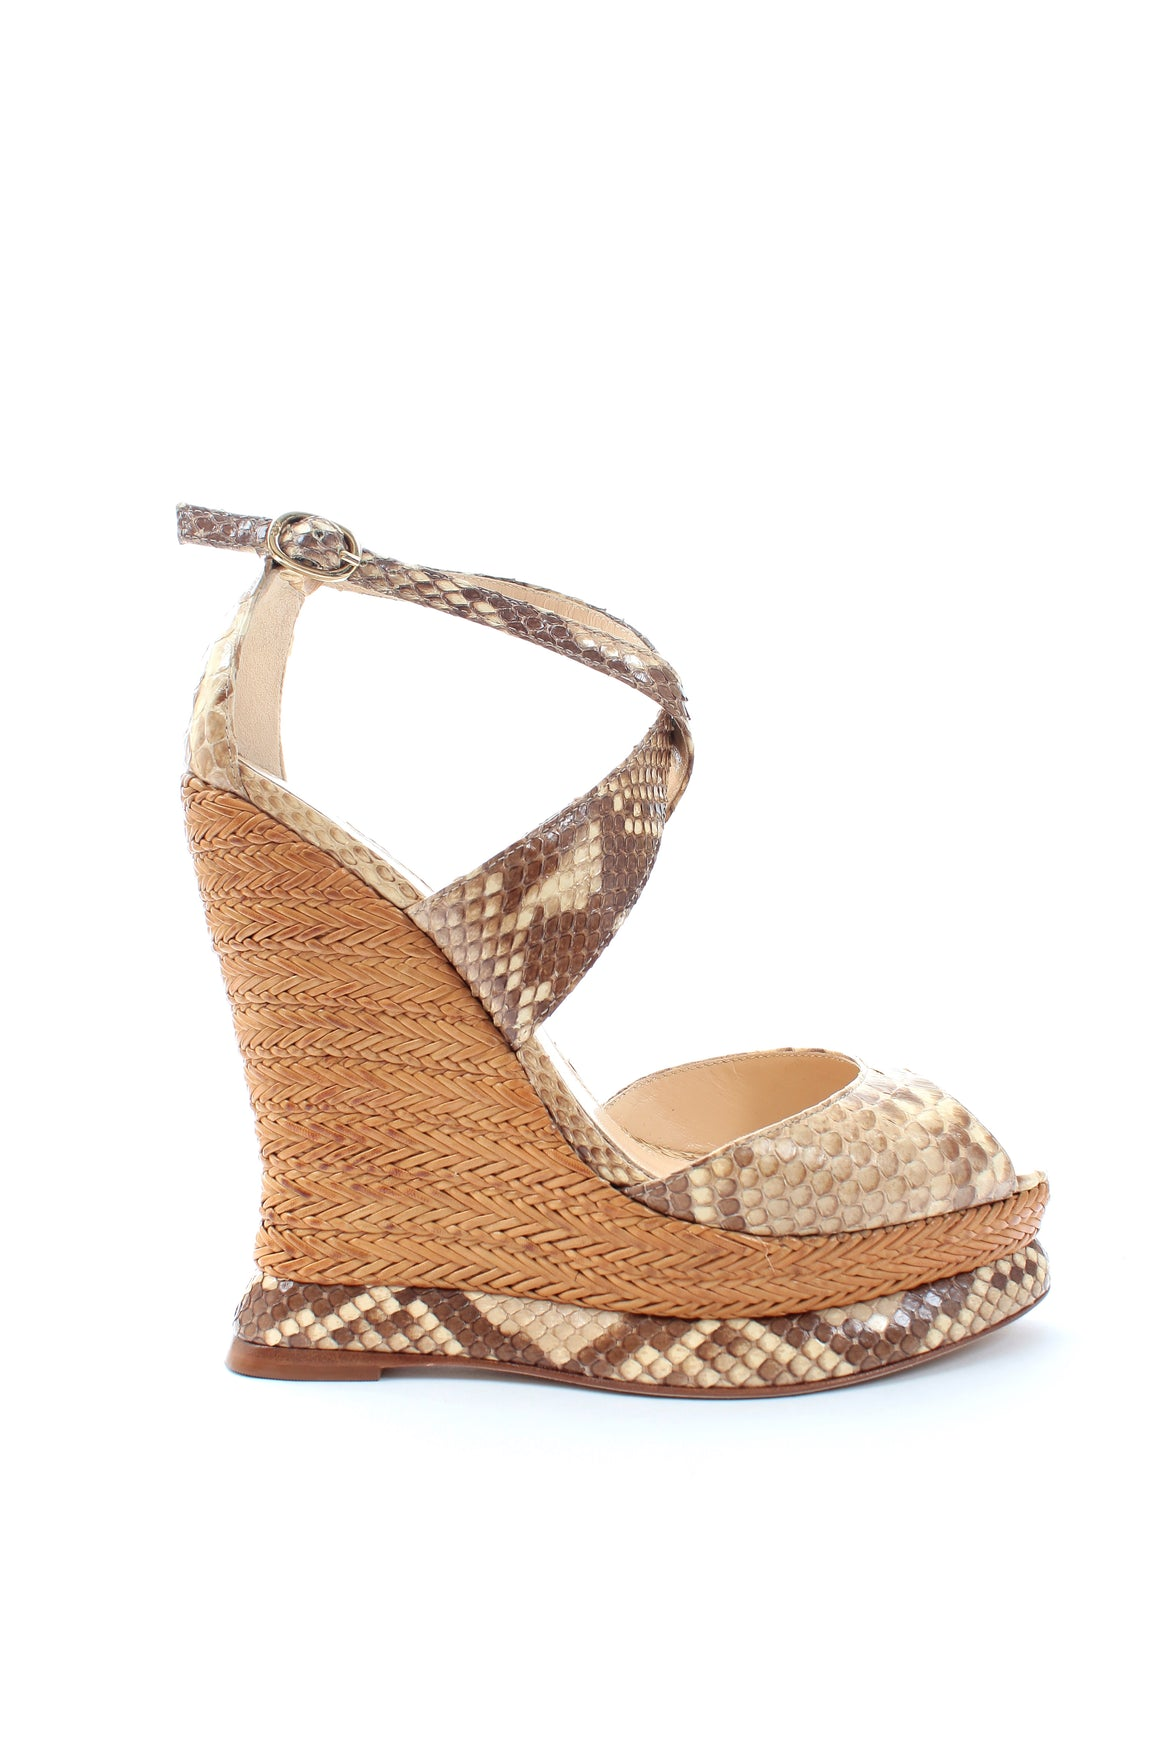 Alexandre Birman Python and Raffia Wedge Sandals